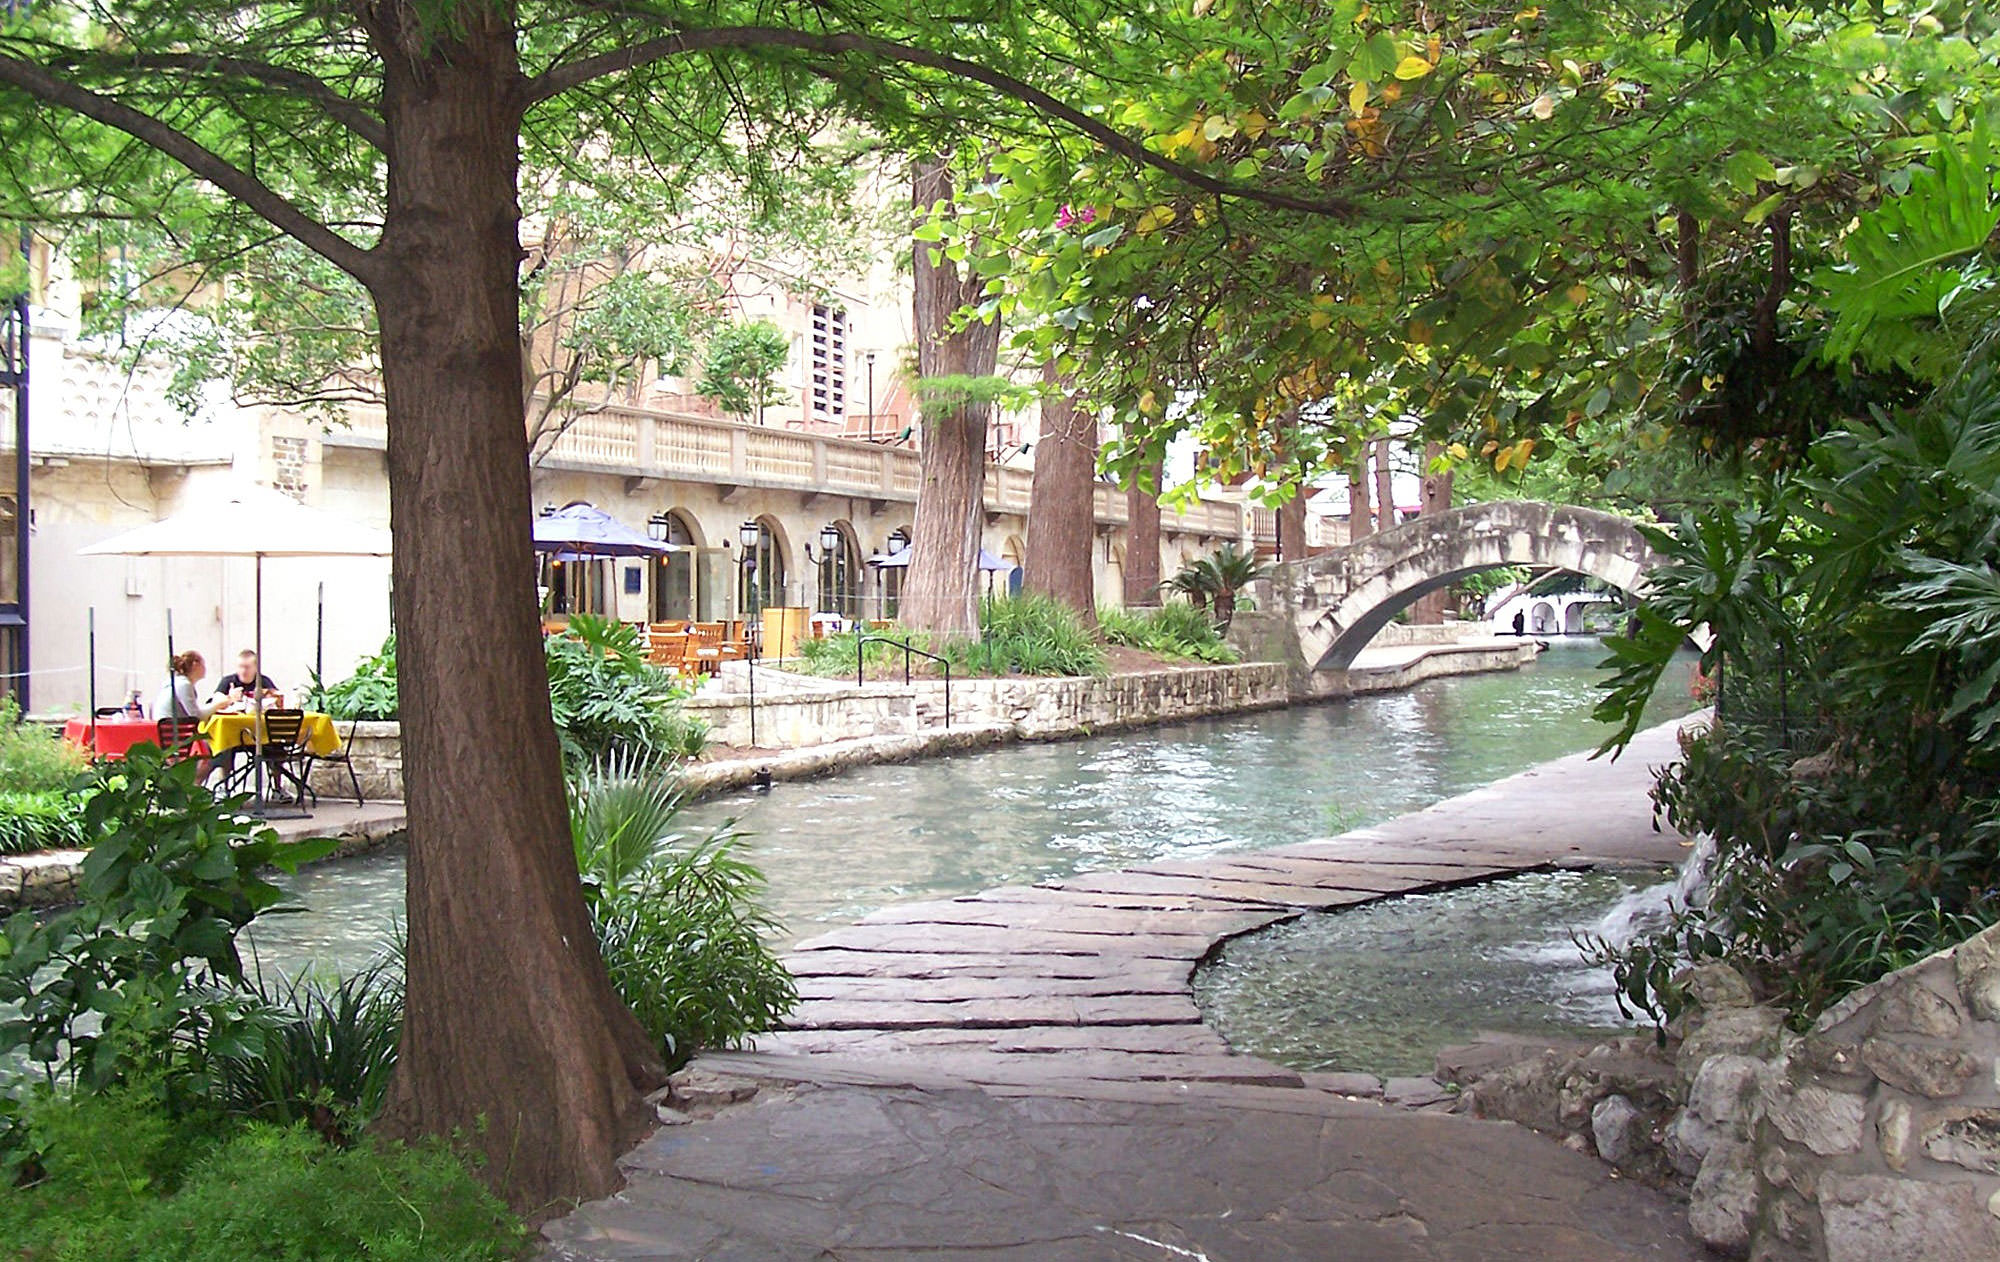 Campus in San Antonio